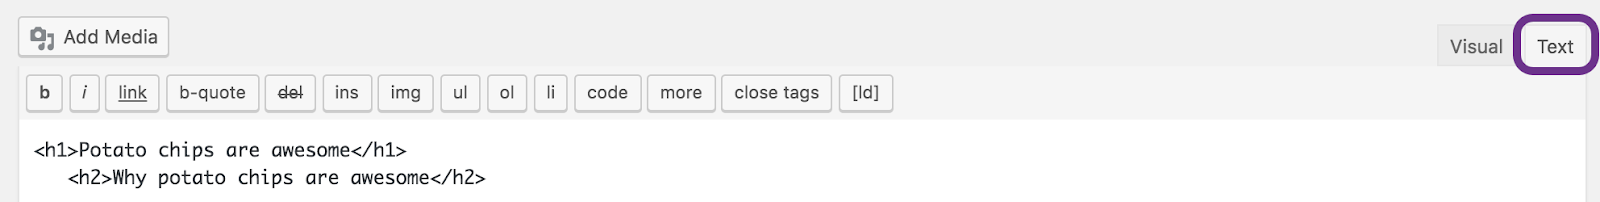 Header tags in an HTML editor